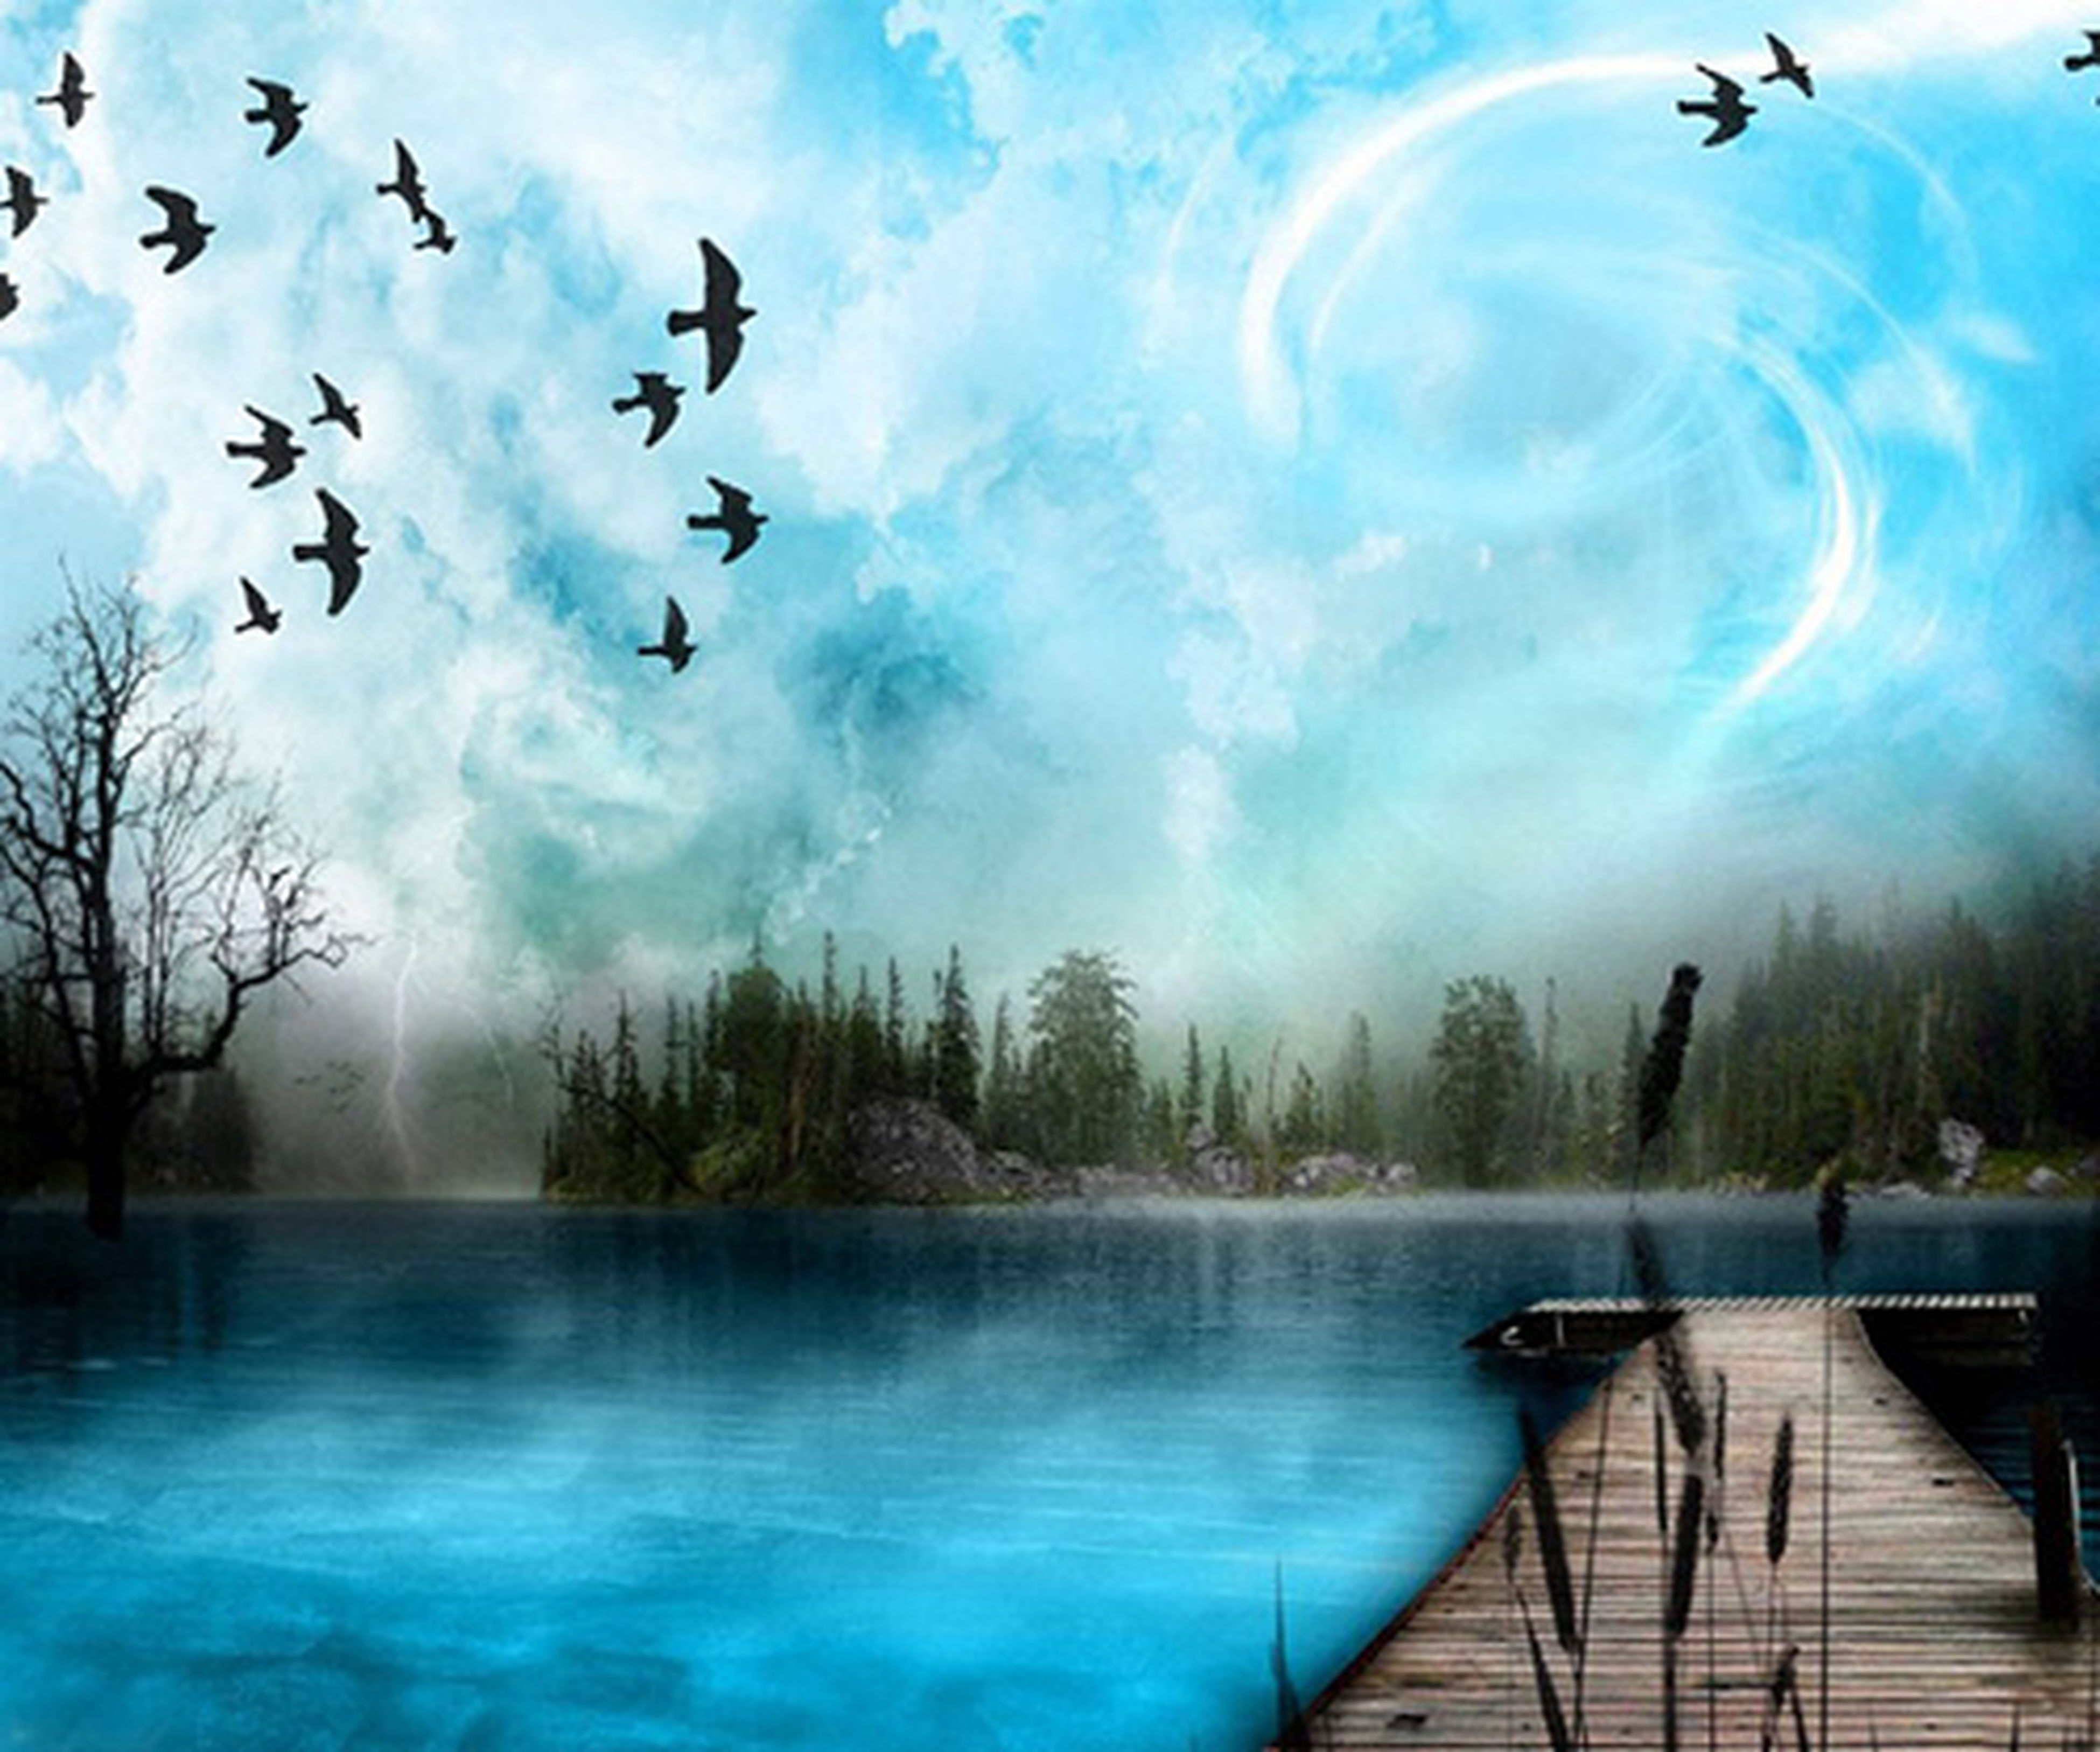 sky, water, flying, cloud - sky, lake, tree, bird, tranquil scene, cloud, tranquility, scenics, reflection, beauty in nature, nature, cloudy, mid-air, transportation, outdoors, animals in the wild, wildlife